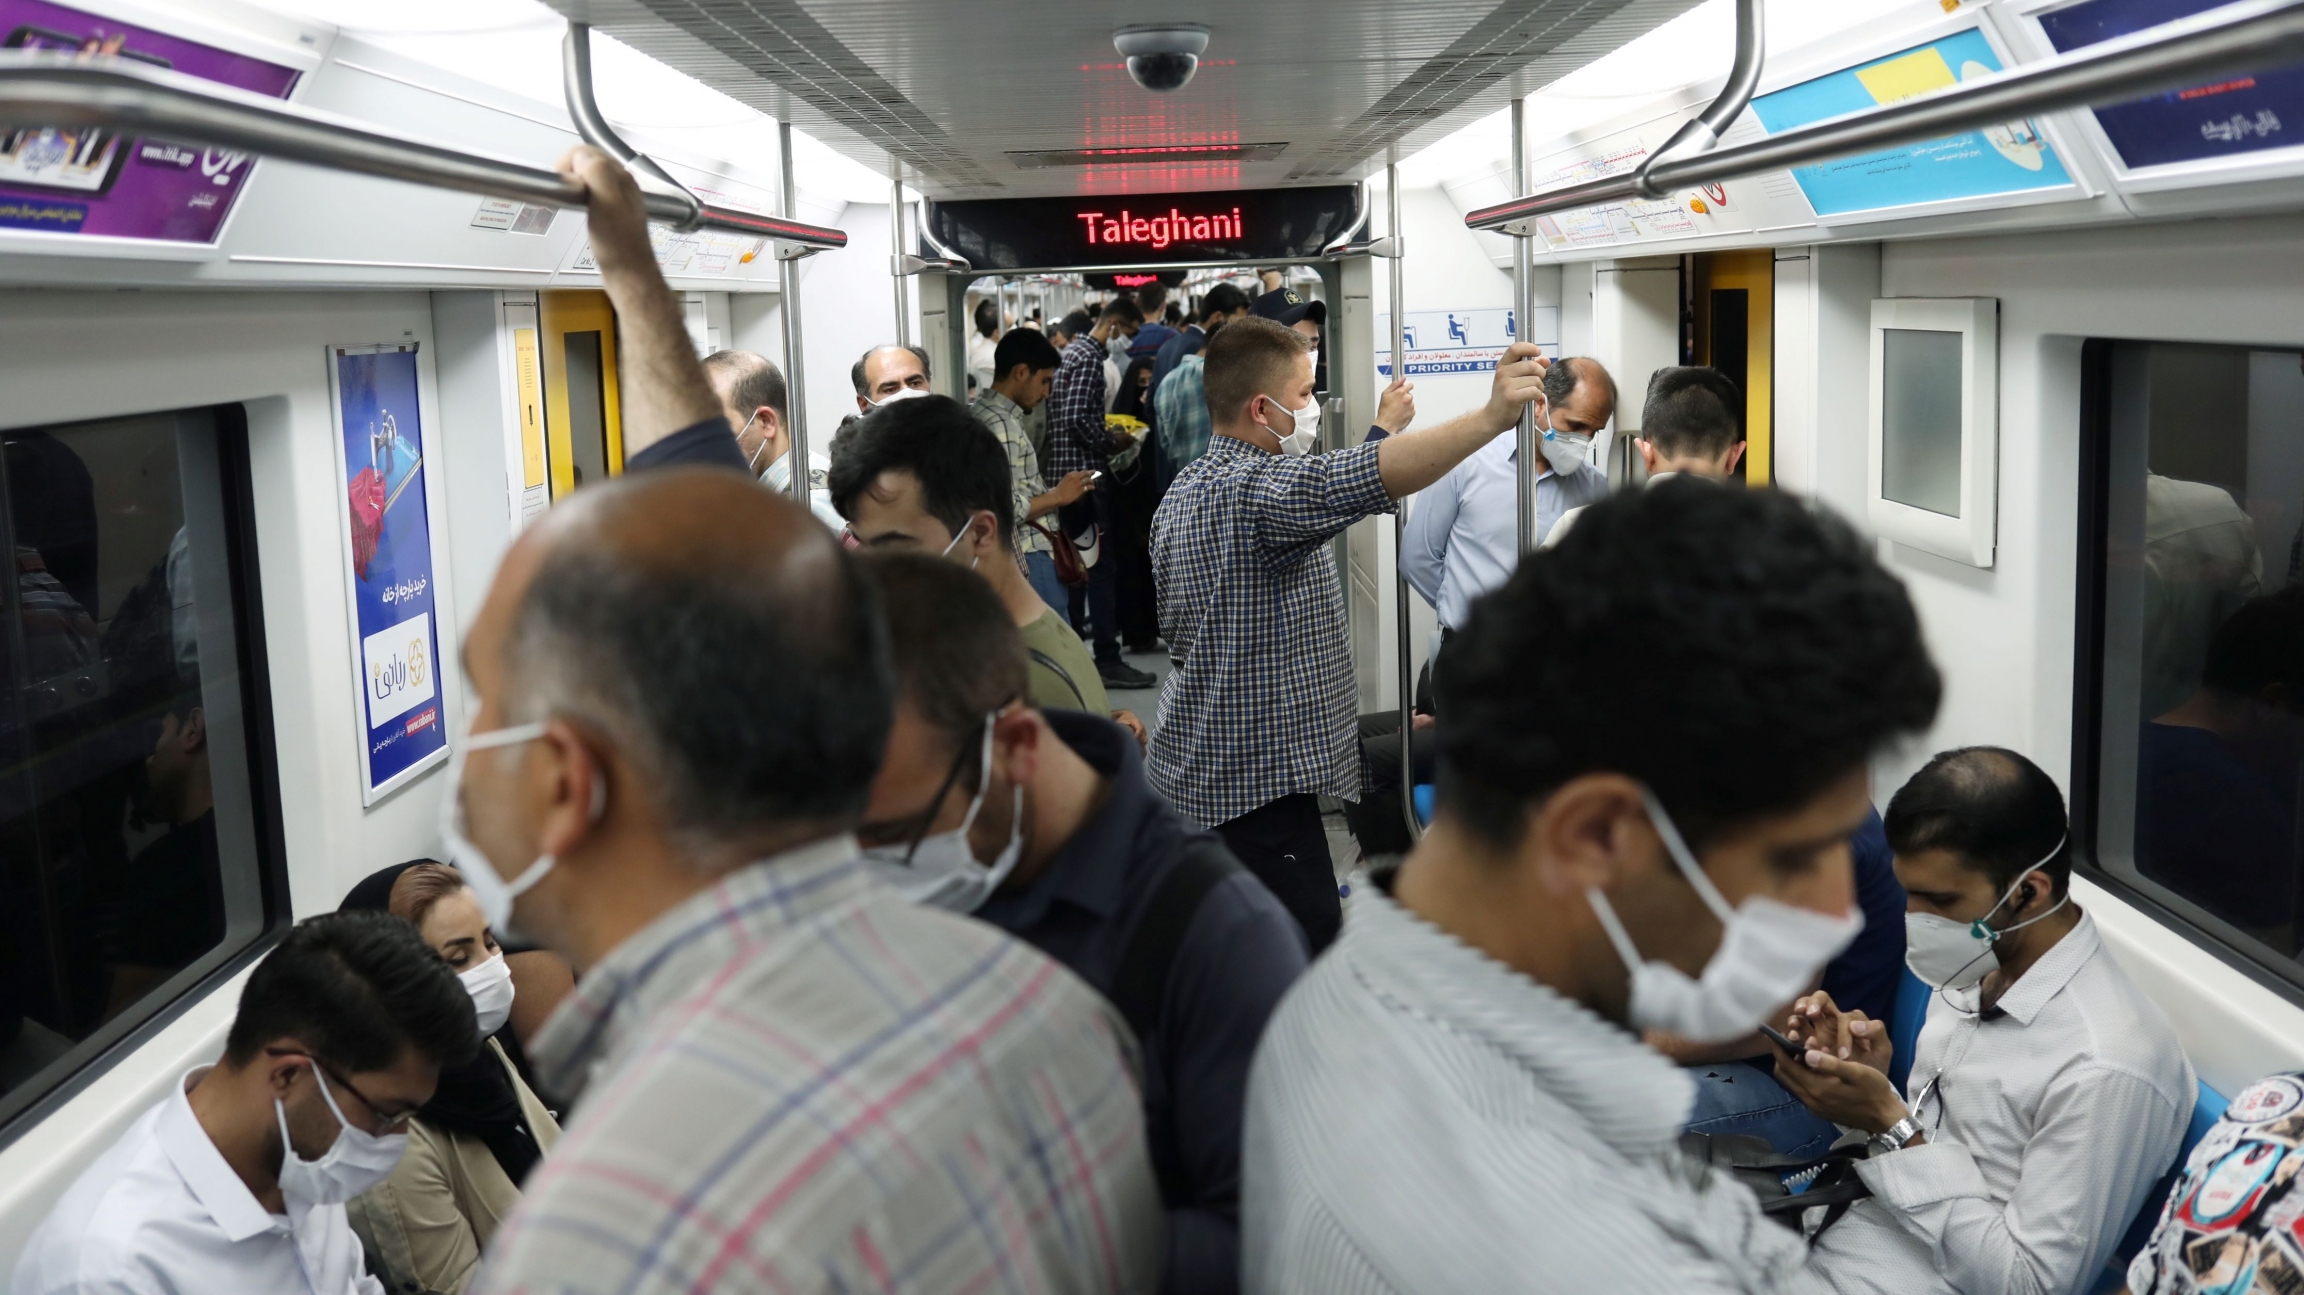 Iranians wear protective face masks while riding on the metro crowded together